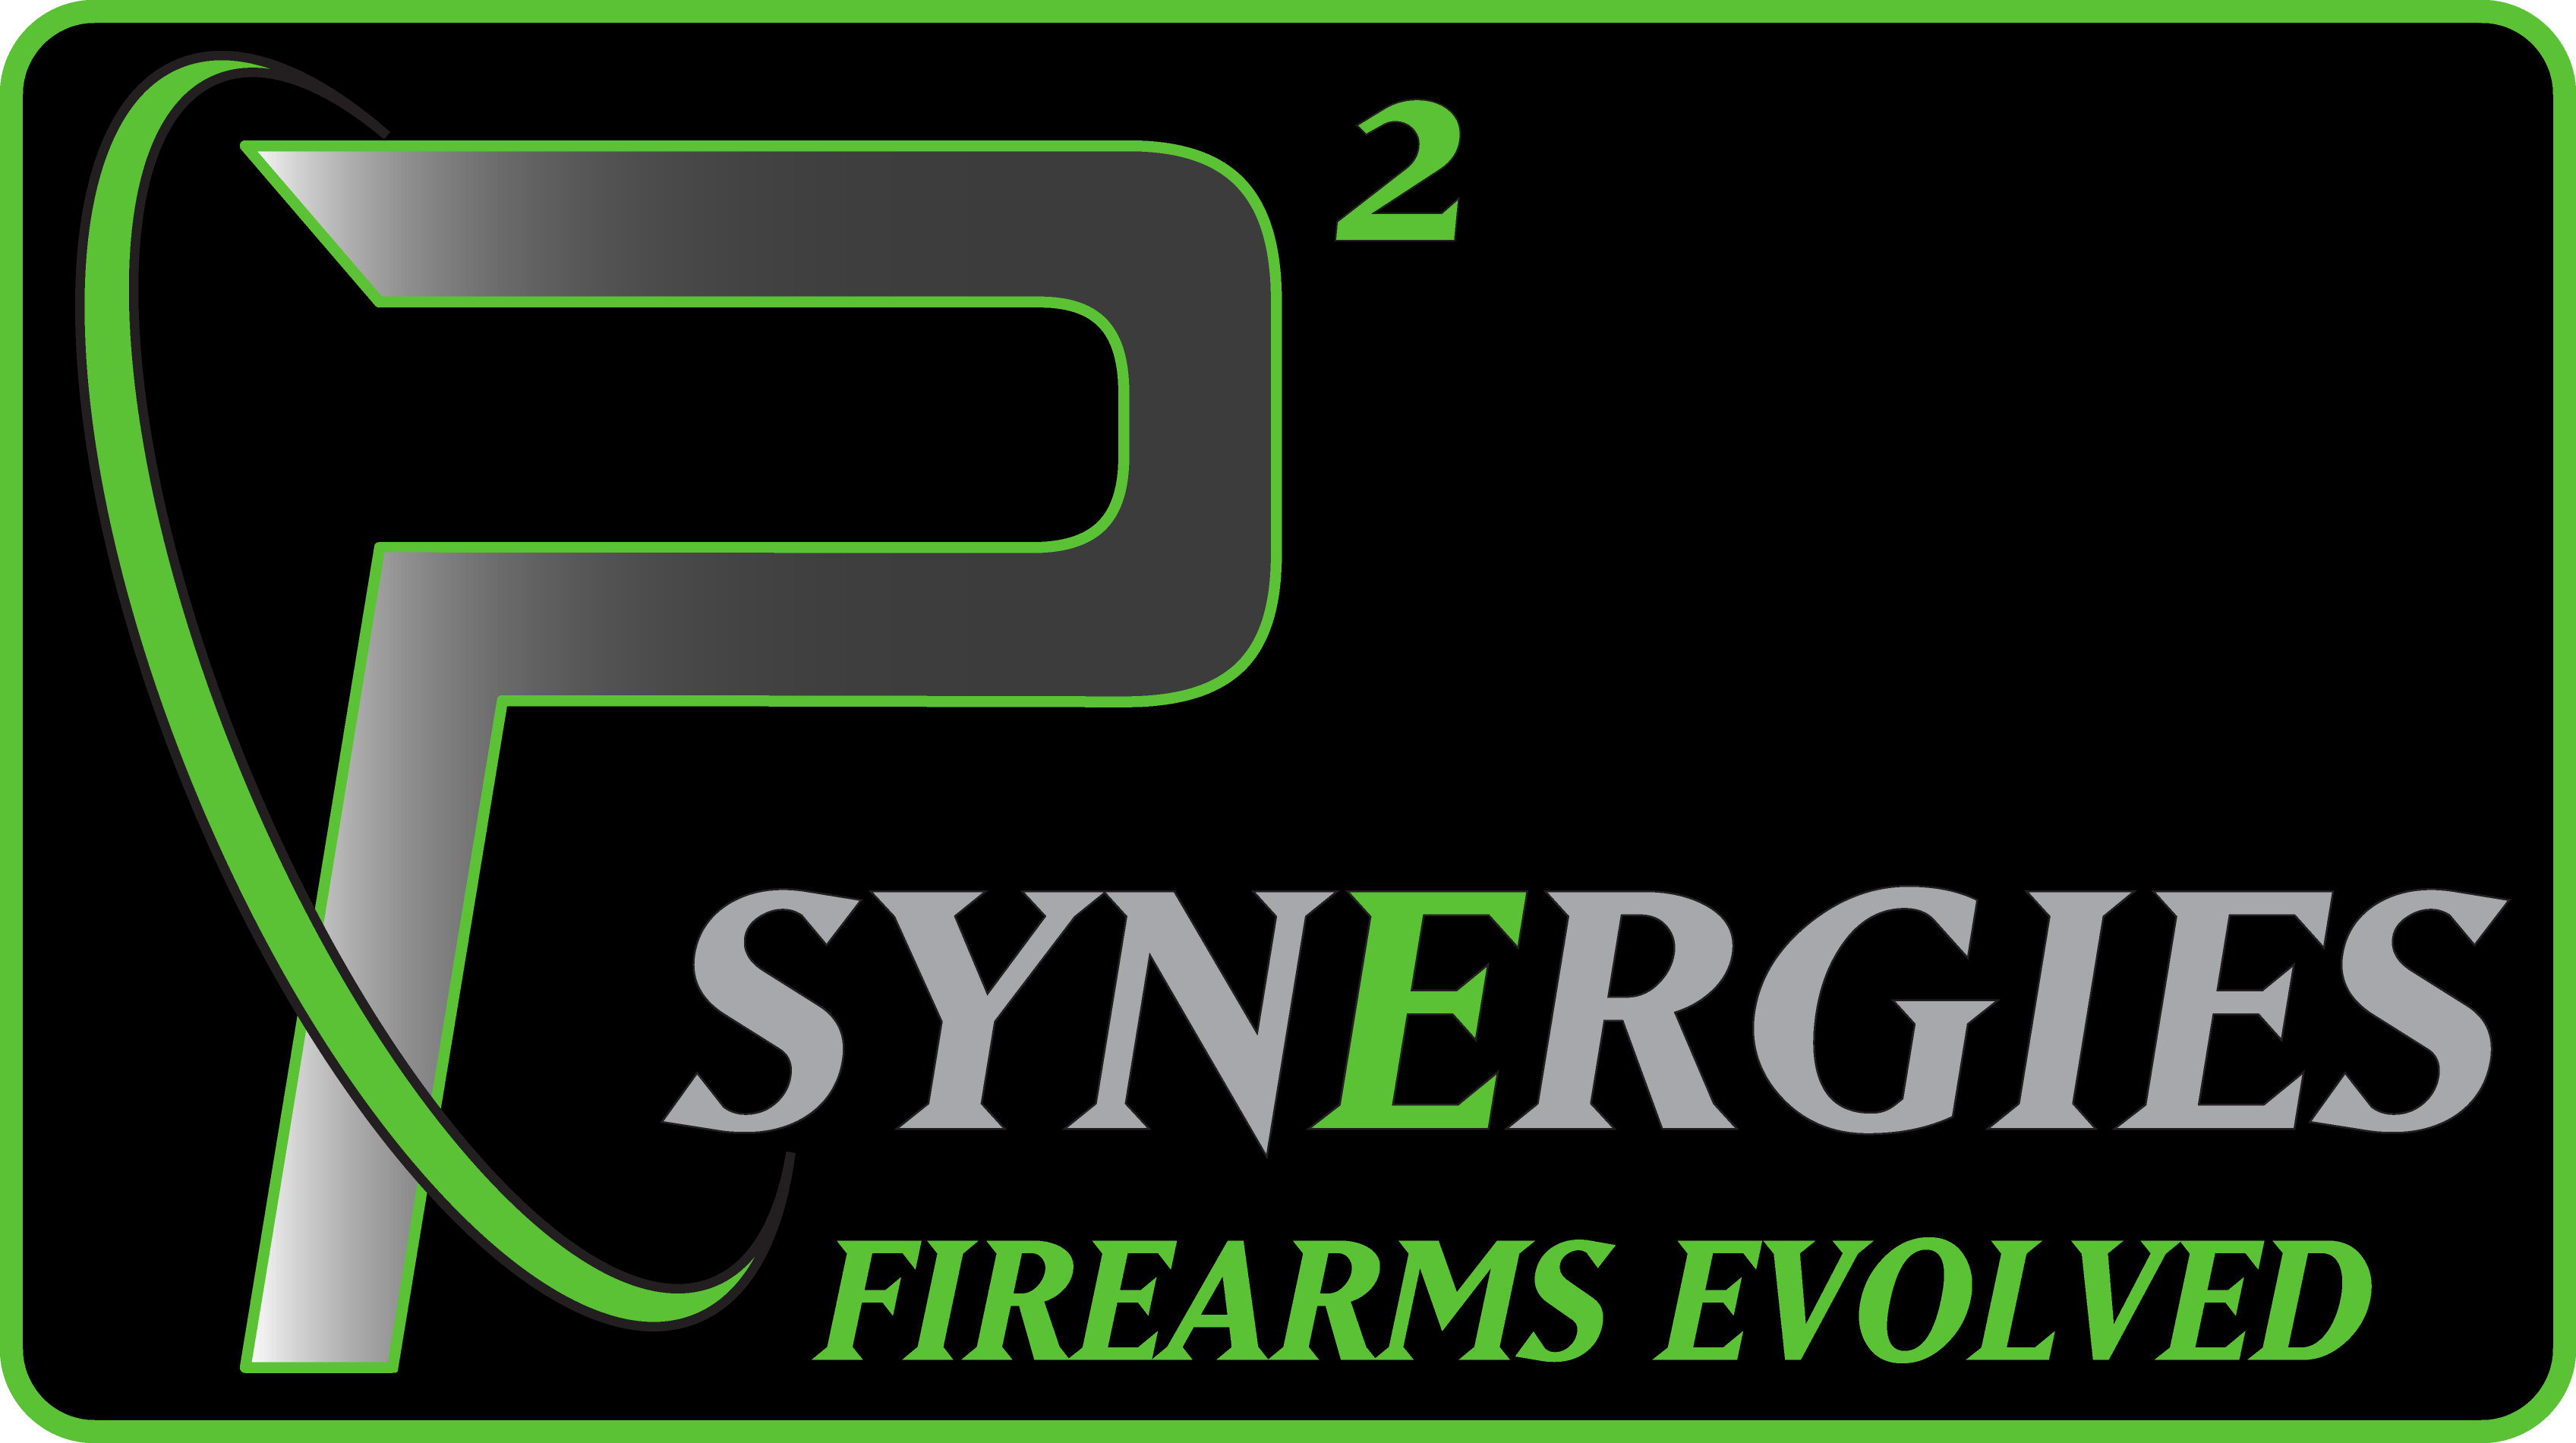 P2 Synergies